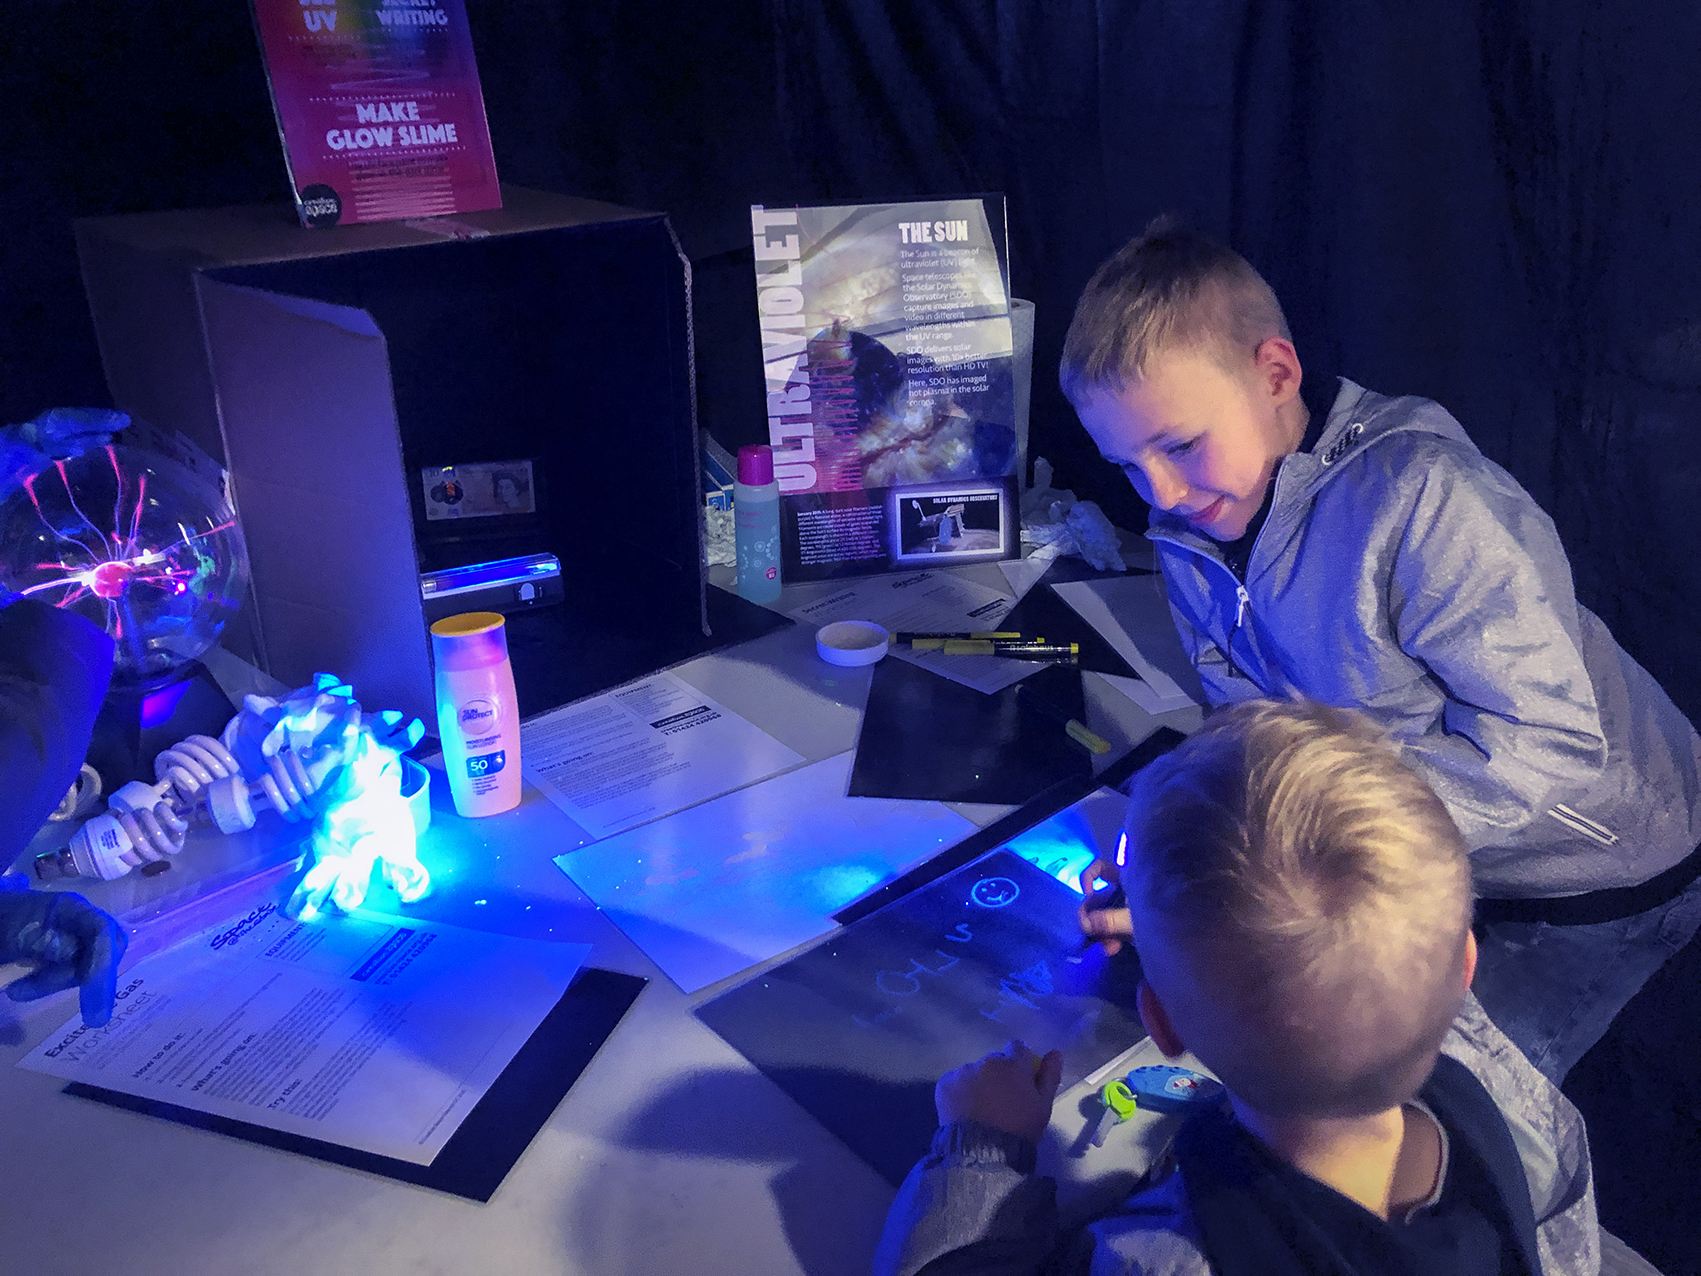 Children getting hands-on with the Secret Writing drop-in workshop at the Space@TheStade electromagnetic spectrum event